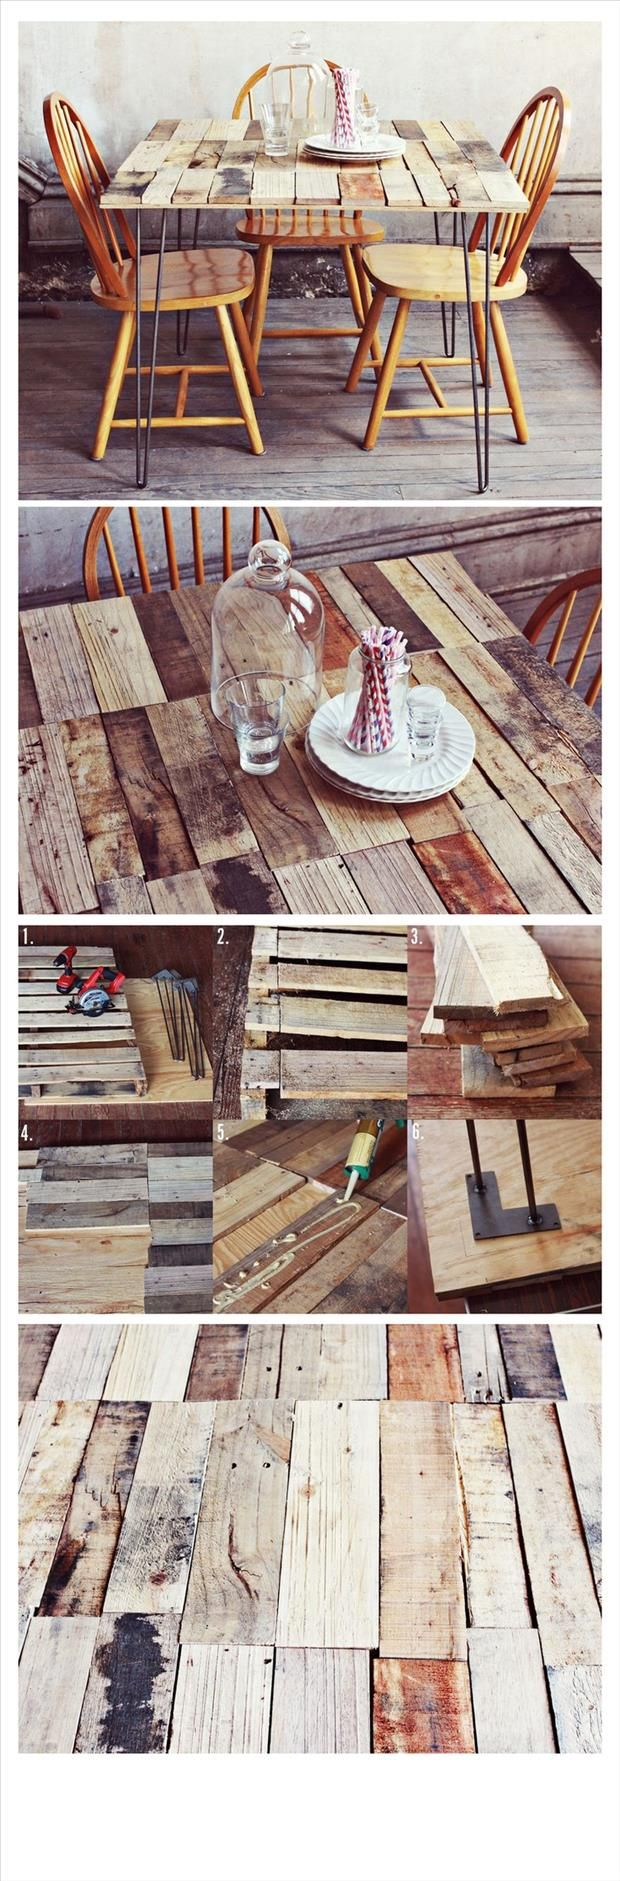 Amazing Uses For Old Pallets - Buy Nothing New - www.buynothingnew.nl #bnnm14